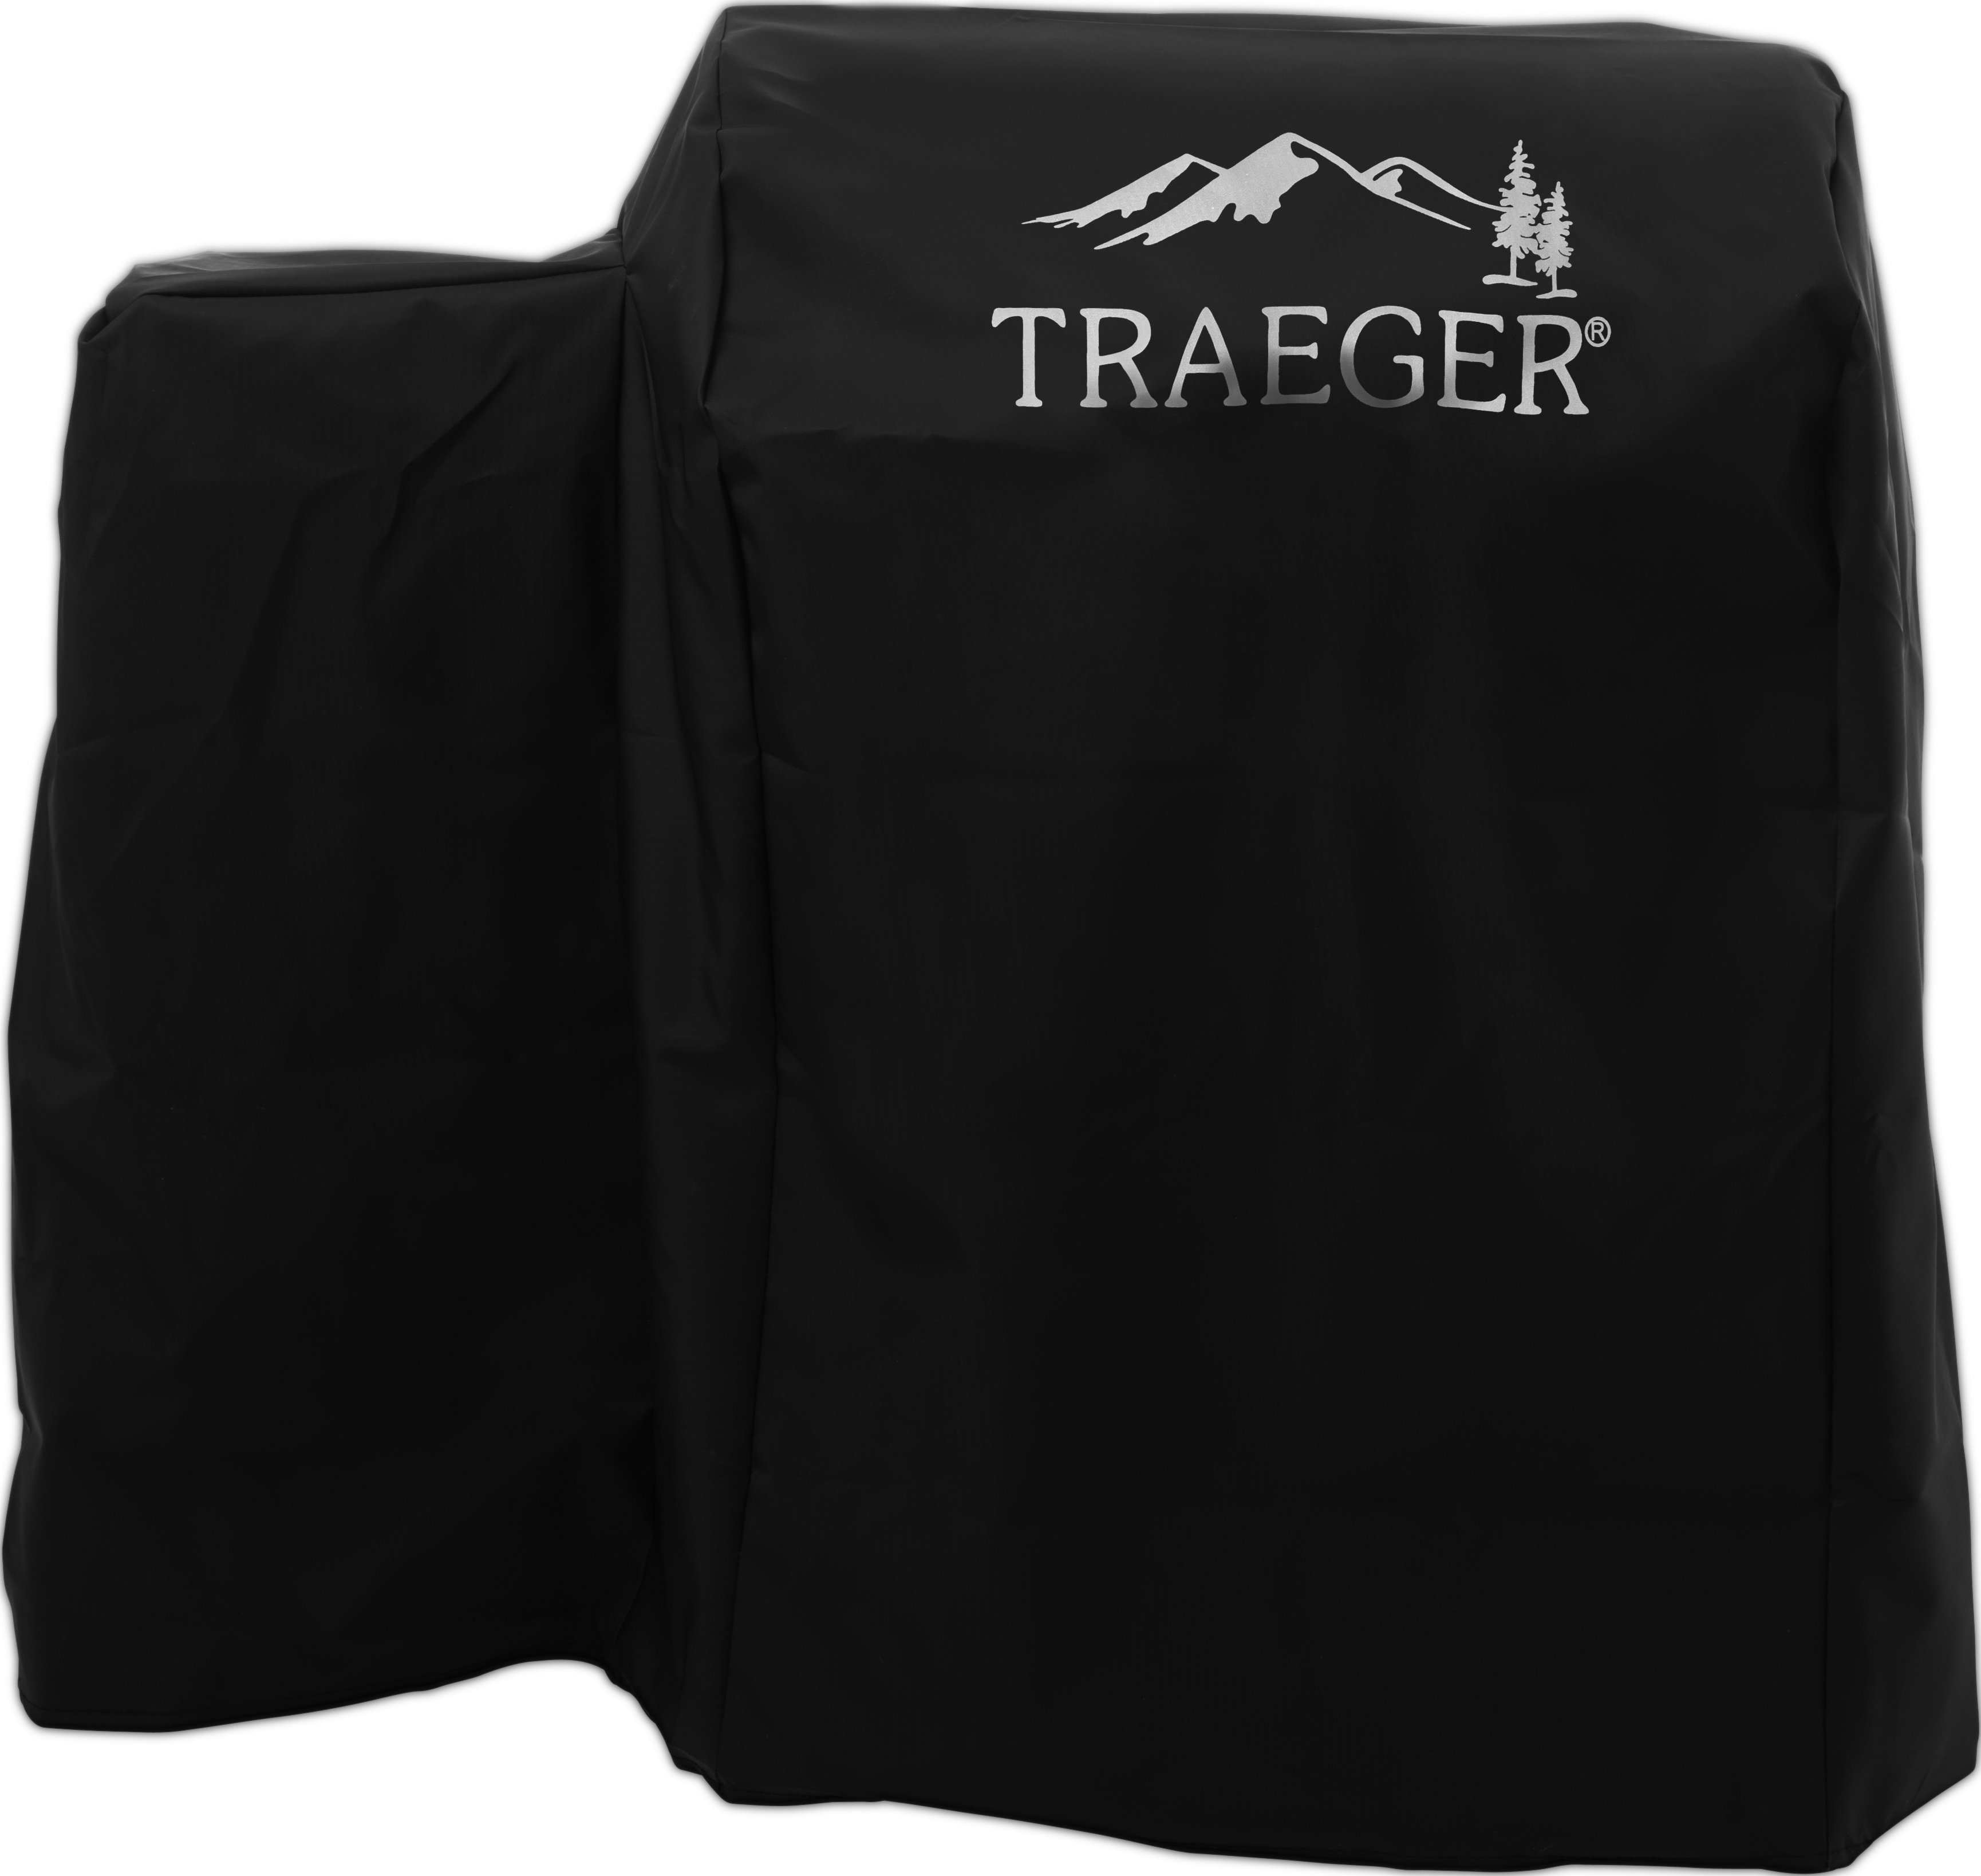 Full Length Grill Cover - 20 Series